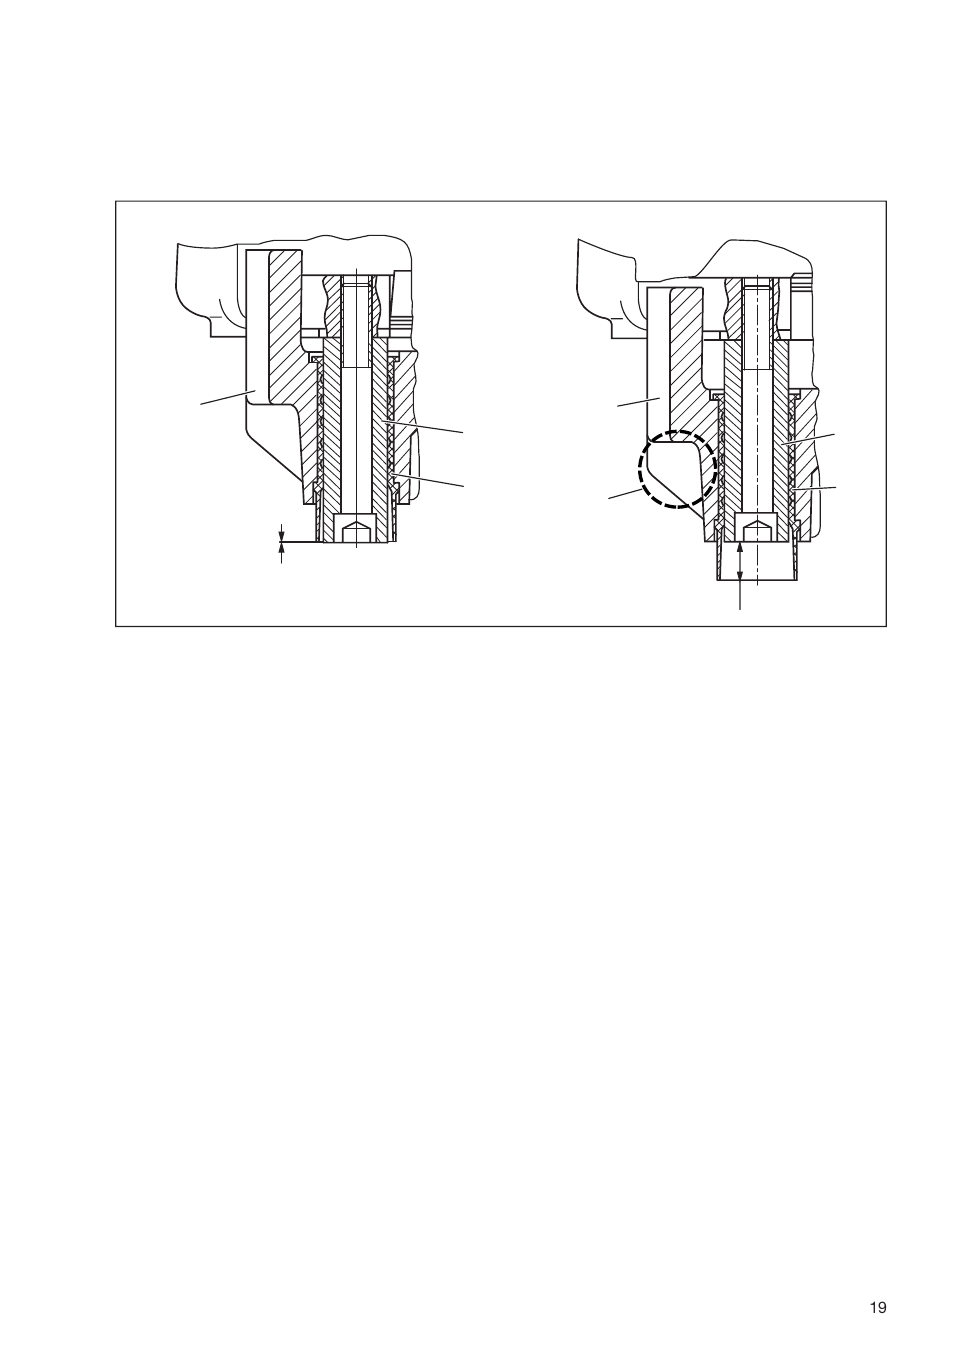 medium resolution of bendix commercial vehicle systems sb 7 air disc brake user manual page 19 36 also for sb 6 air disc brake